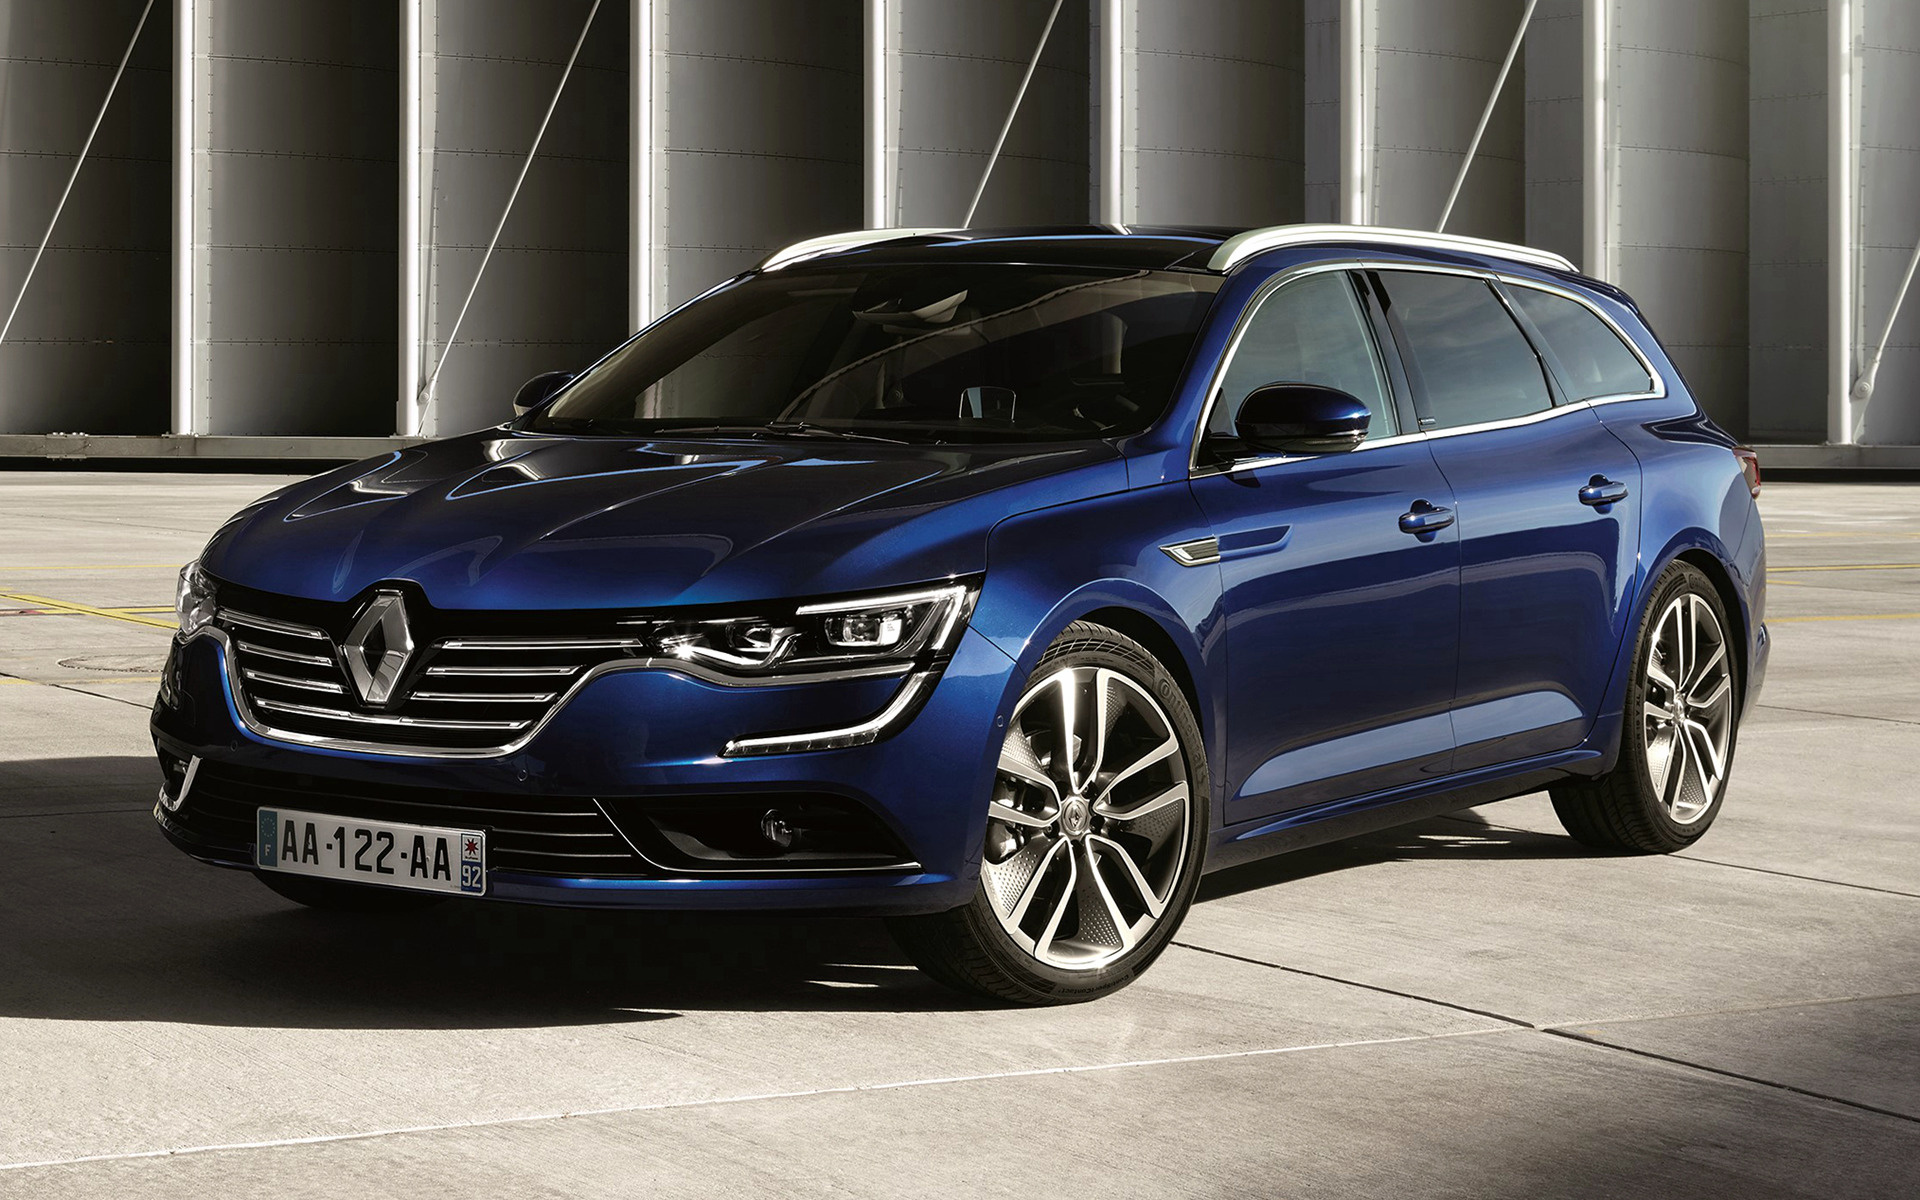 2015 Renault Talisman Estate Wallpapers And Hd Images